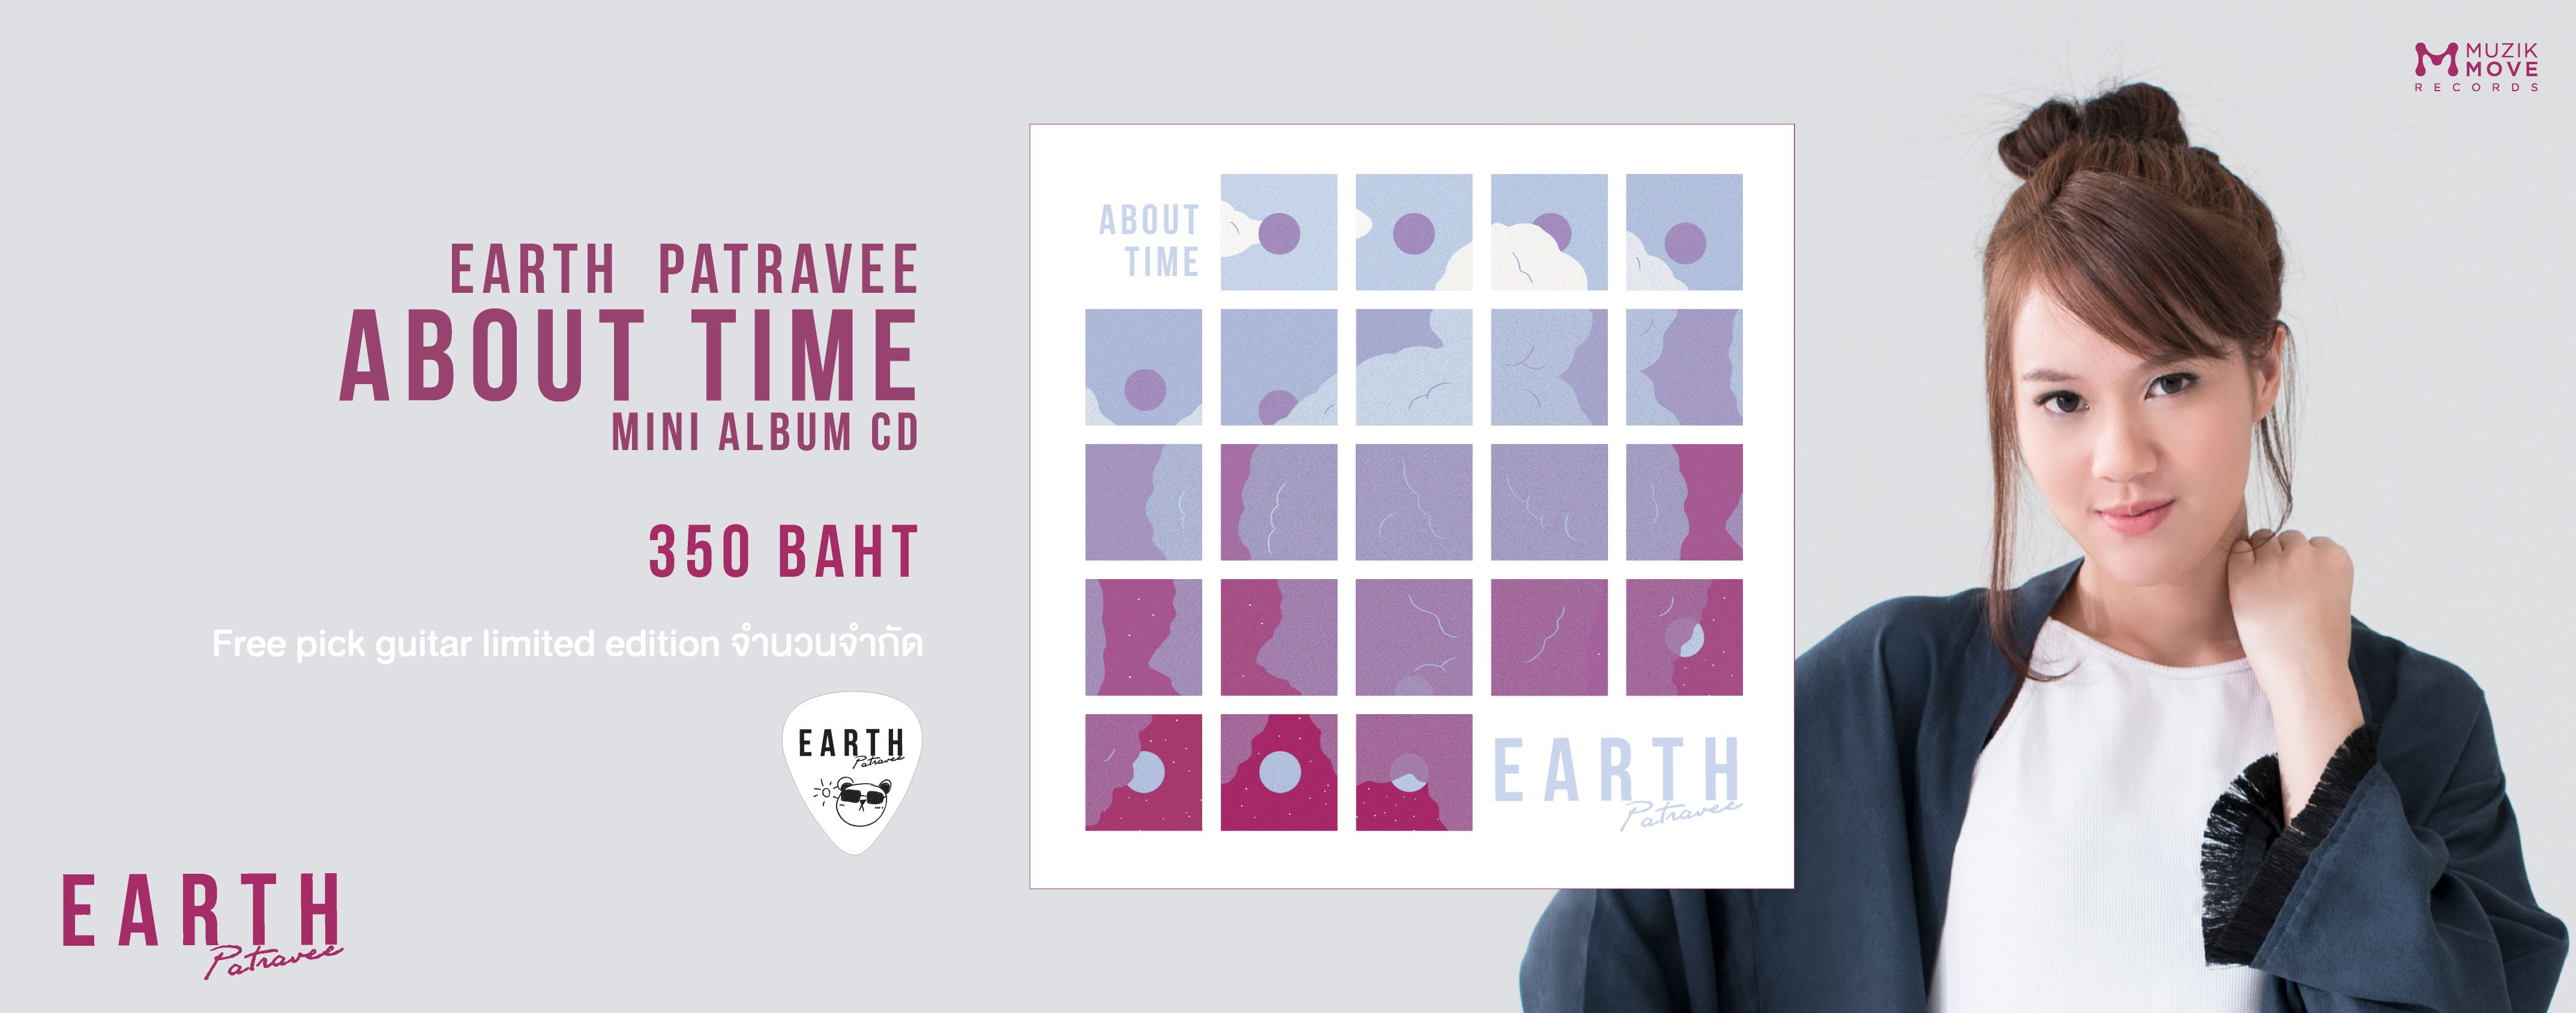 EP Album About Time - EARTH